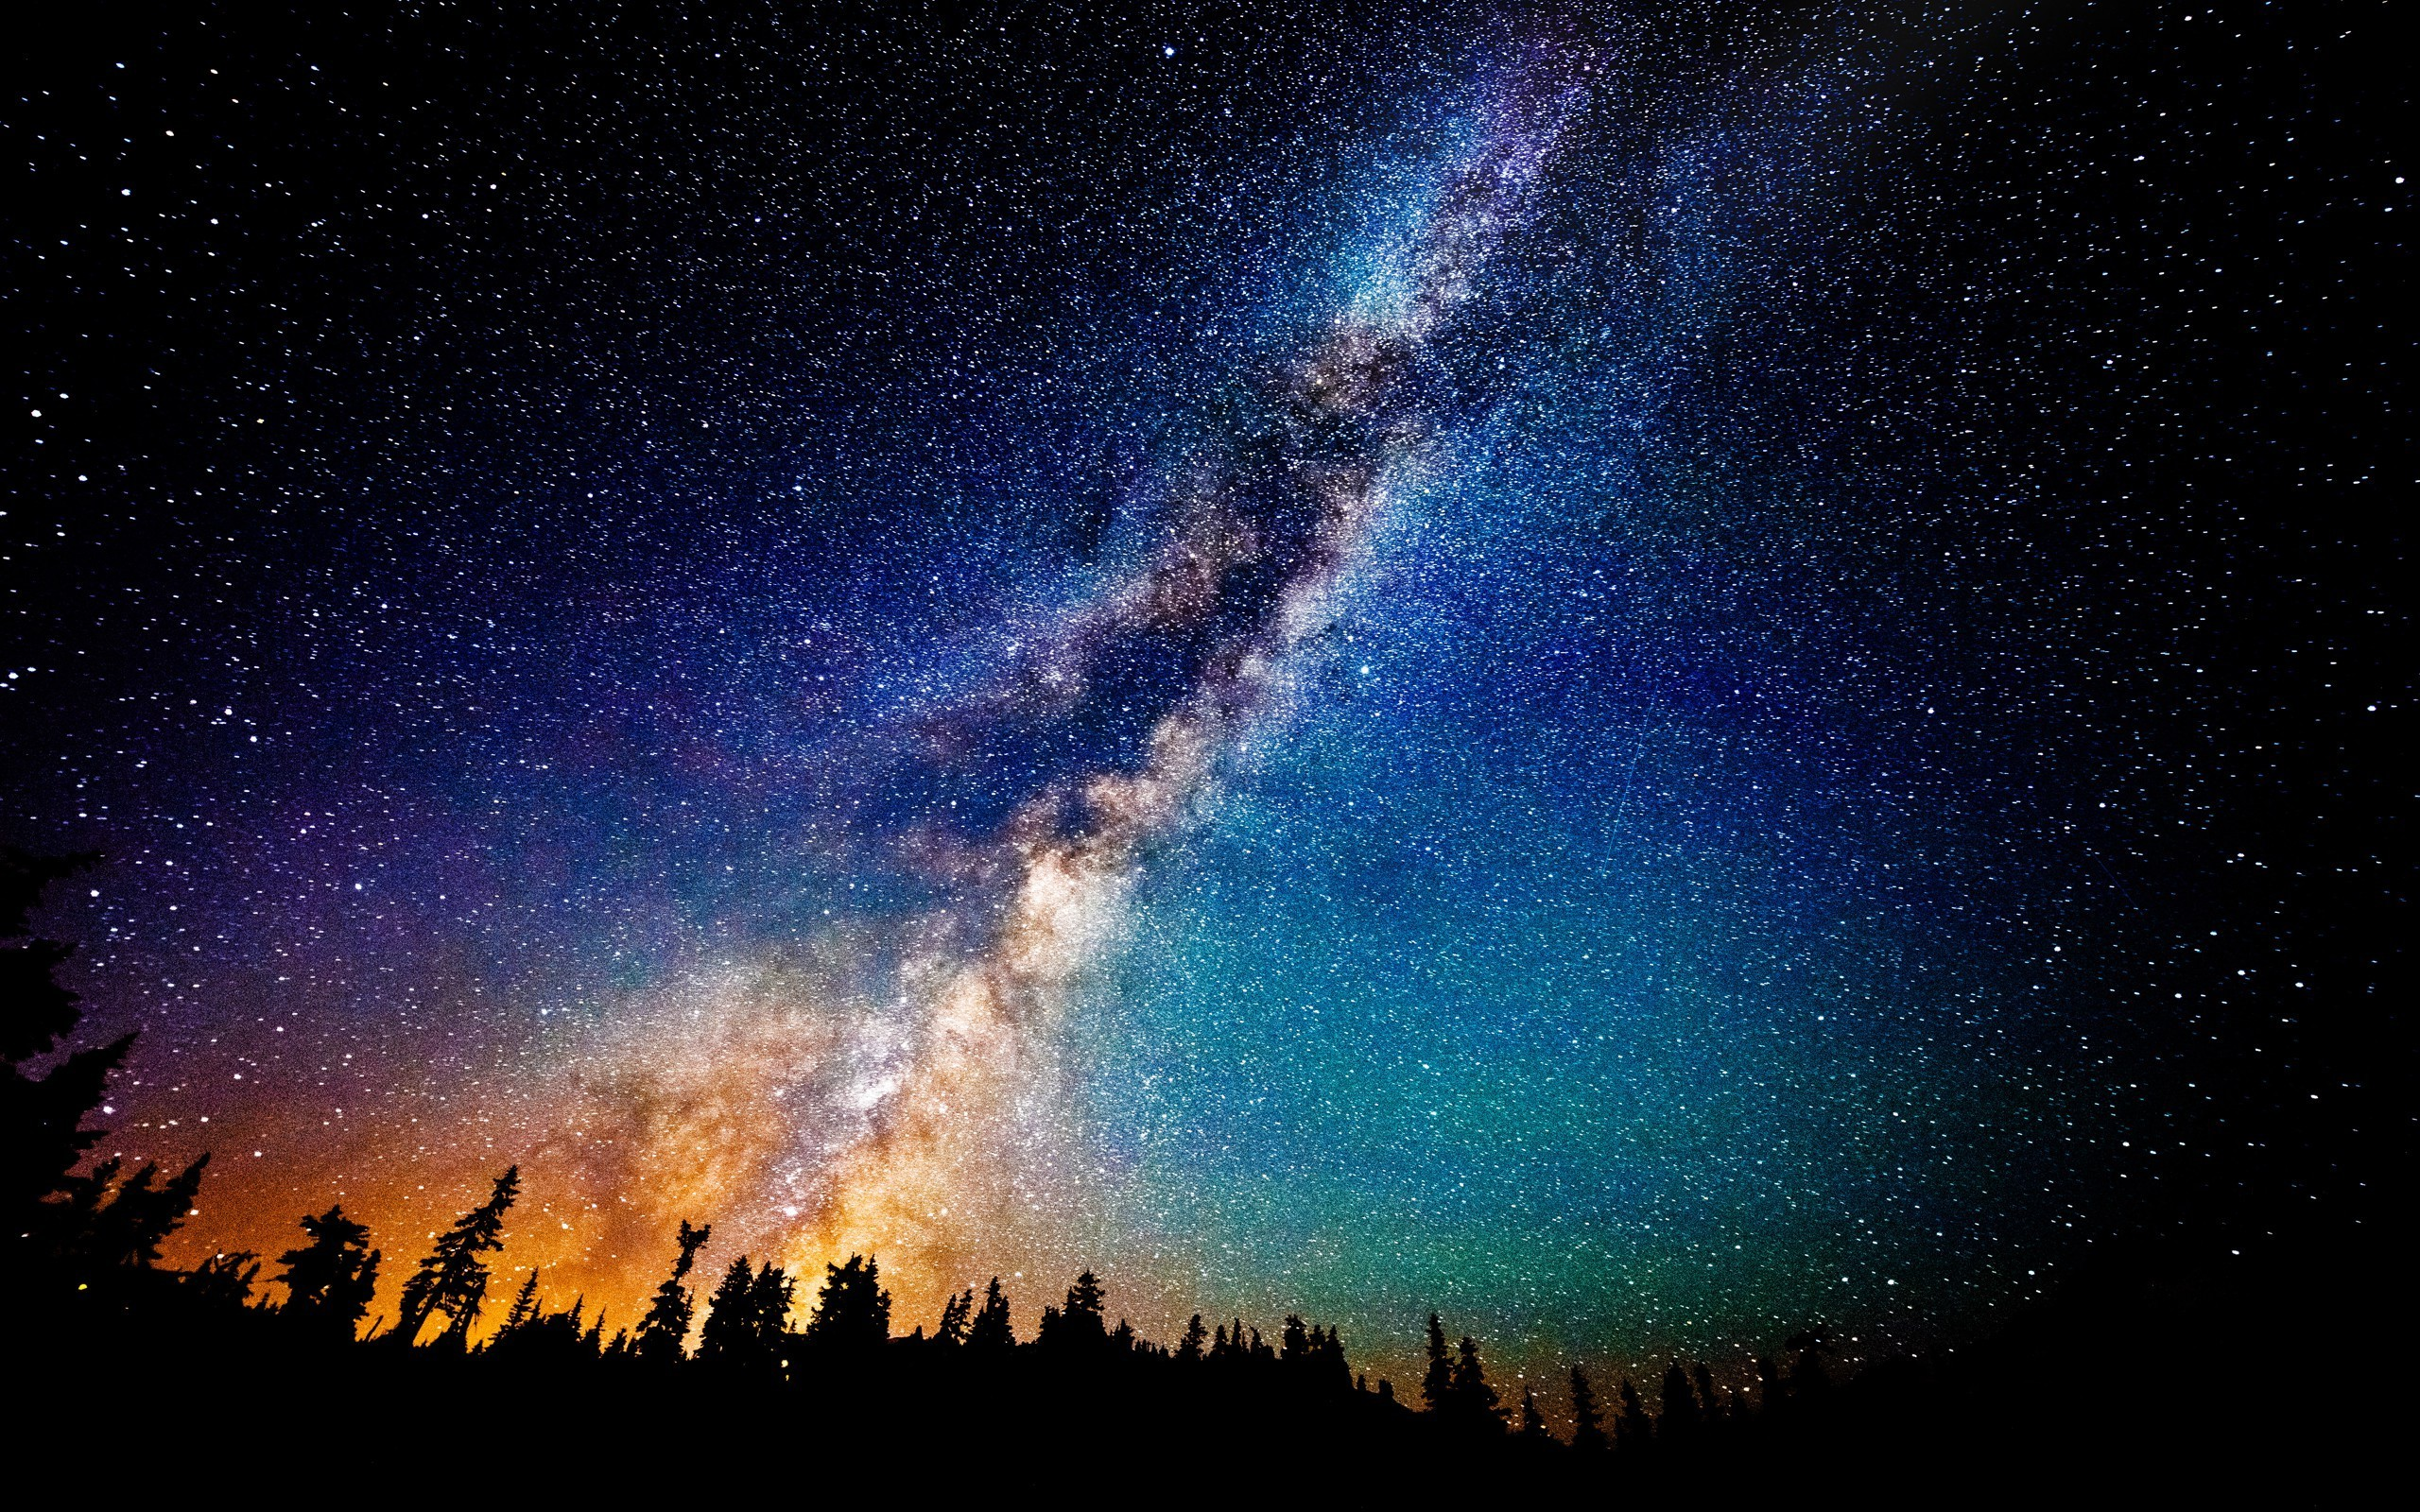 Milky Way Galaxy HD Wallpaper